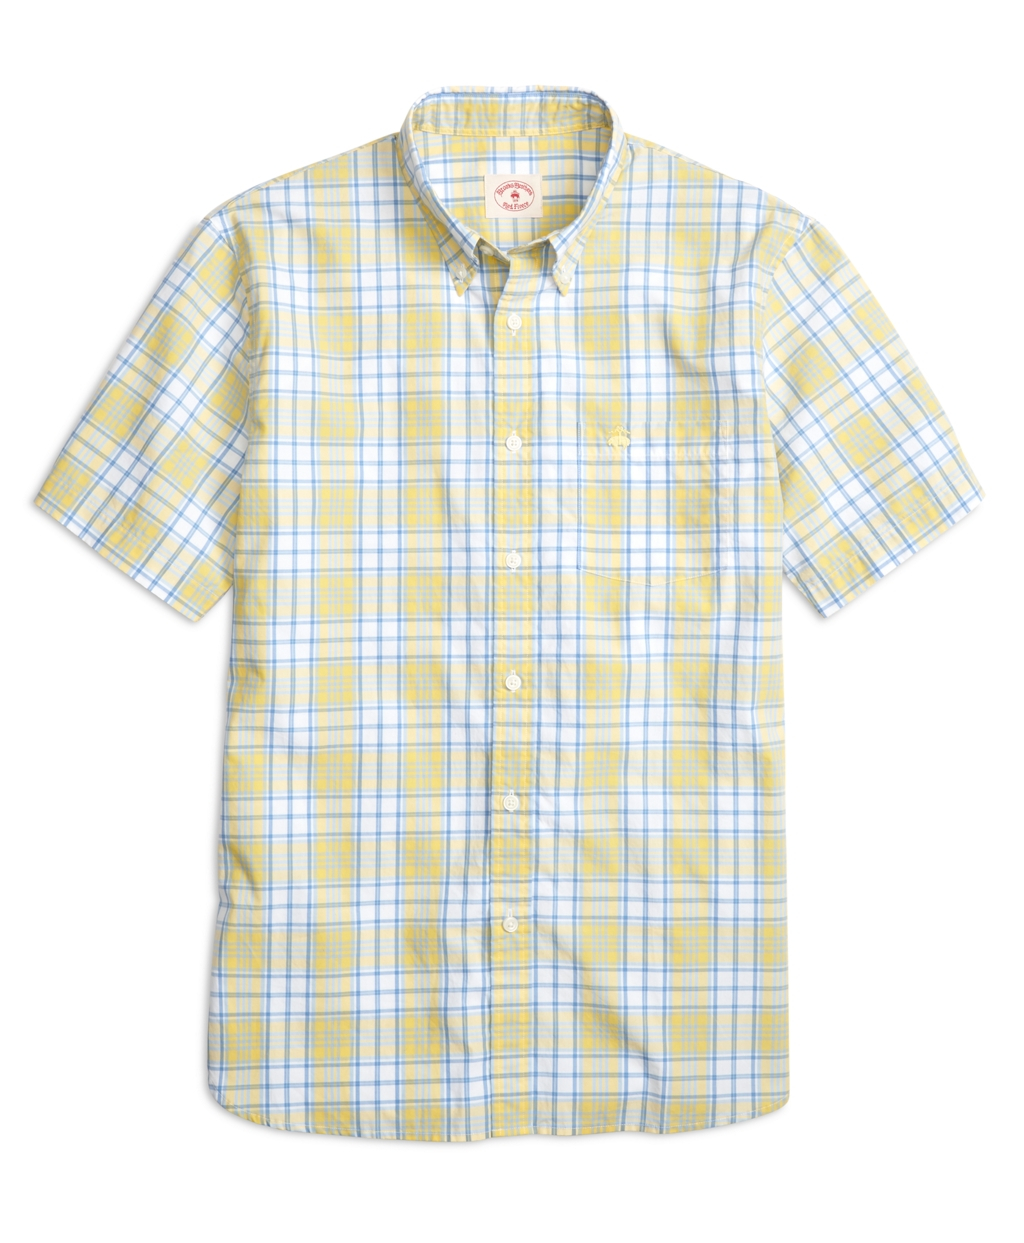 Lyst Brooks Brothers Yellow And Blue Plaid Short Sleeve